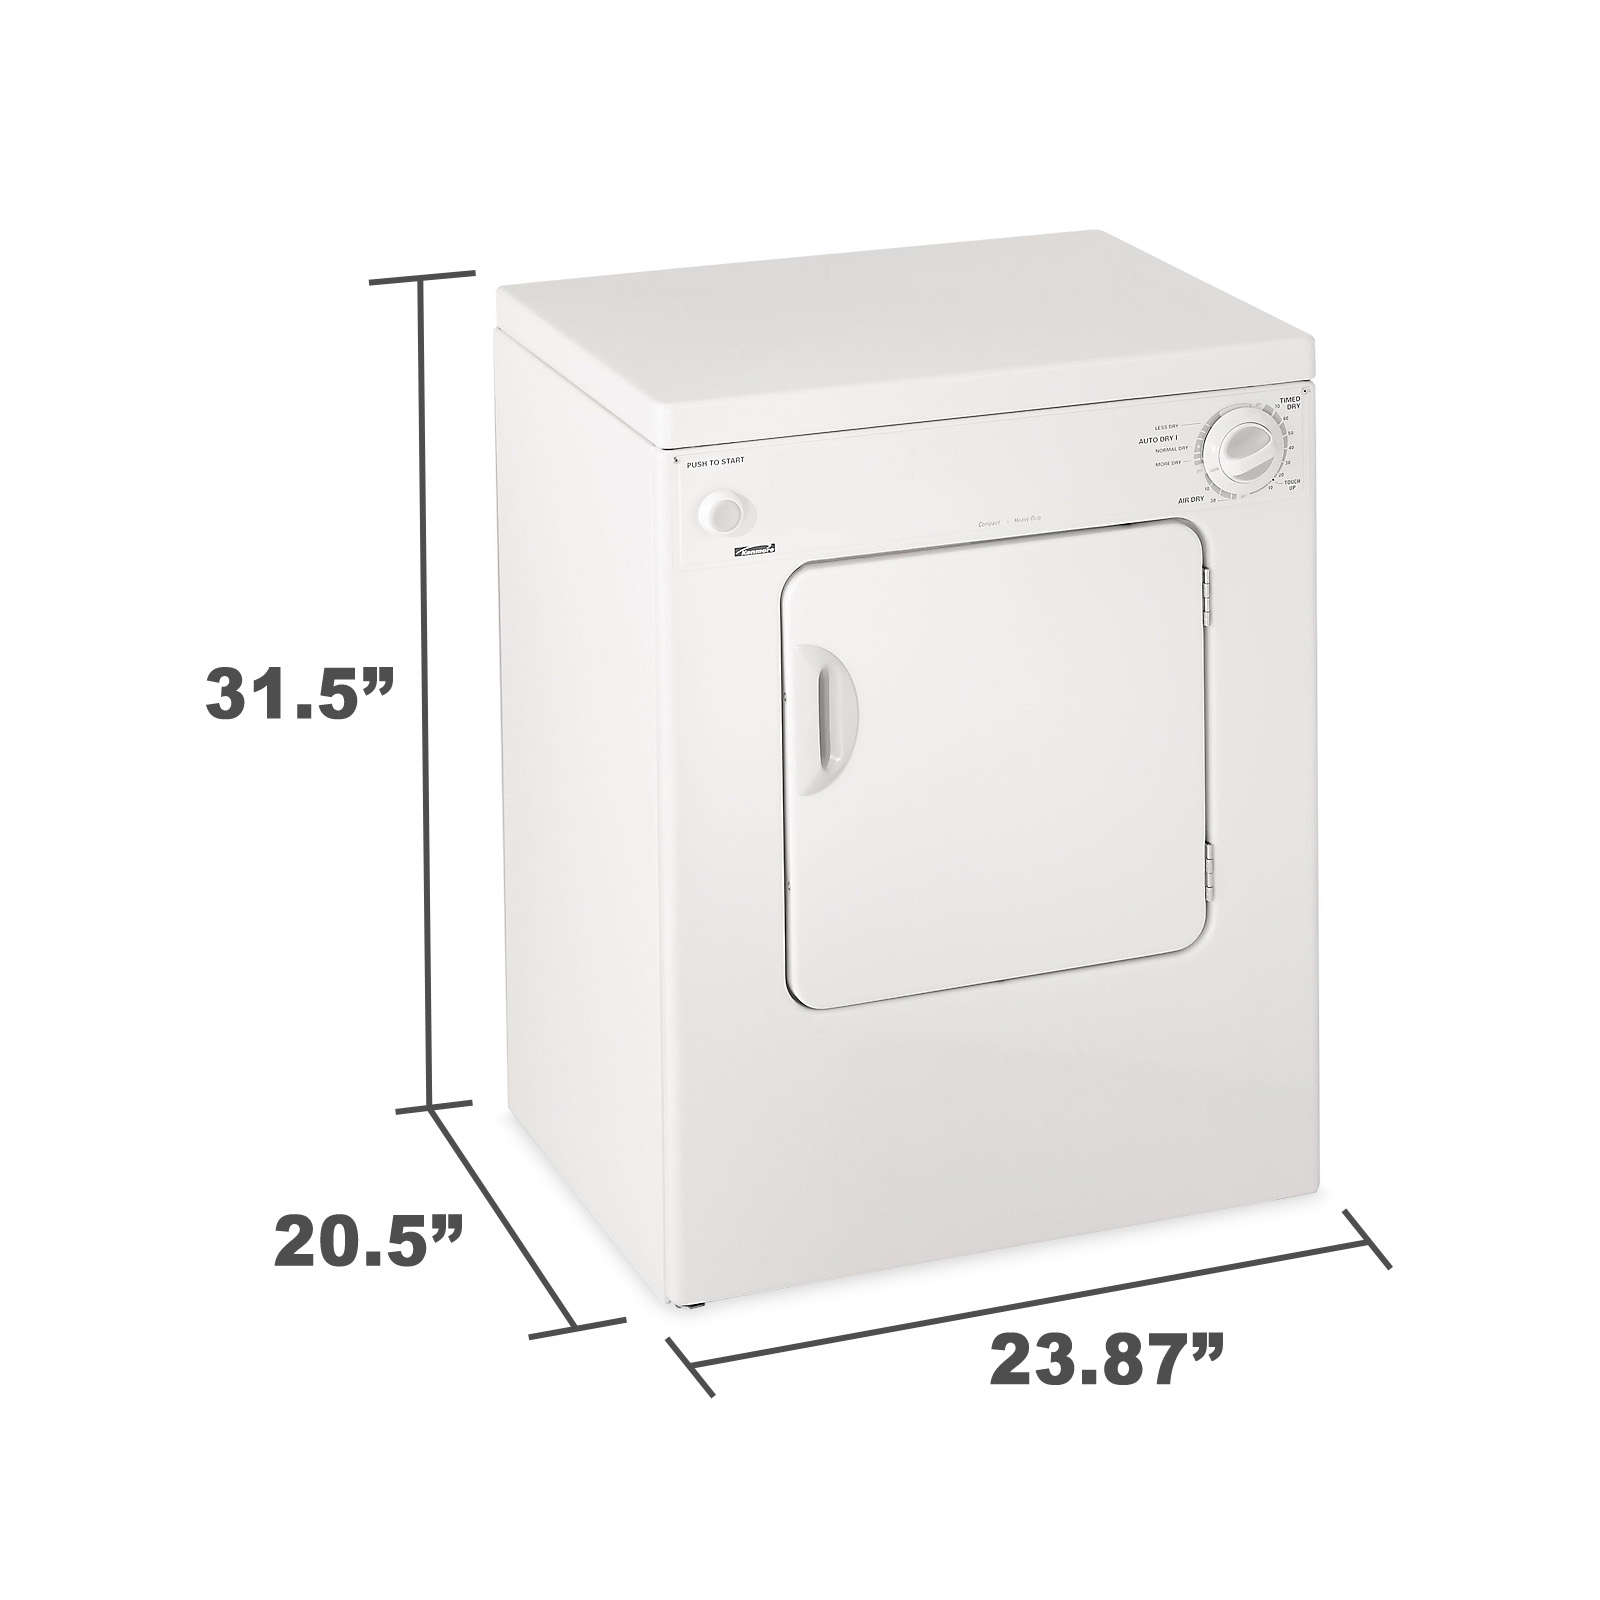 Kenmore 84722 3.4 cu. ft. Electric Compact Portable Extra-Large Capacity Dryer - White